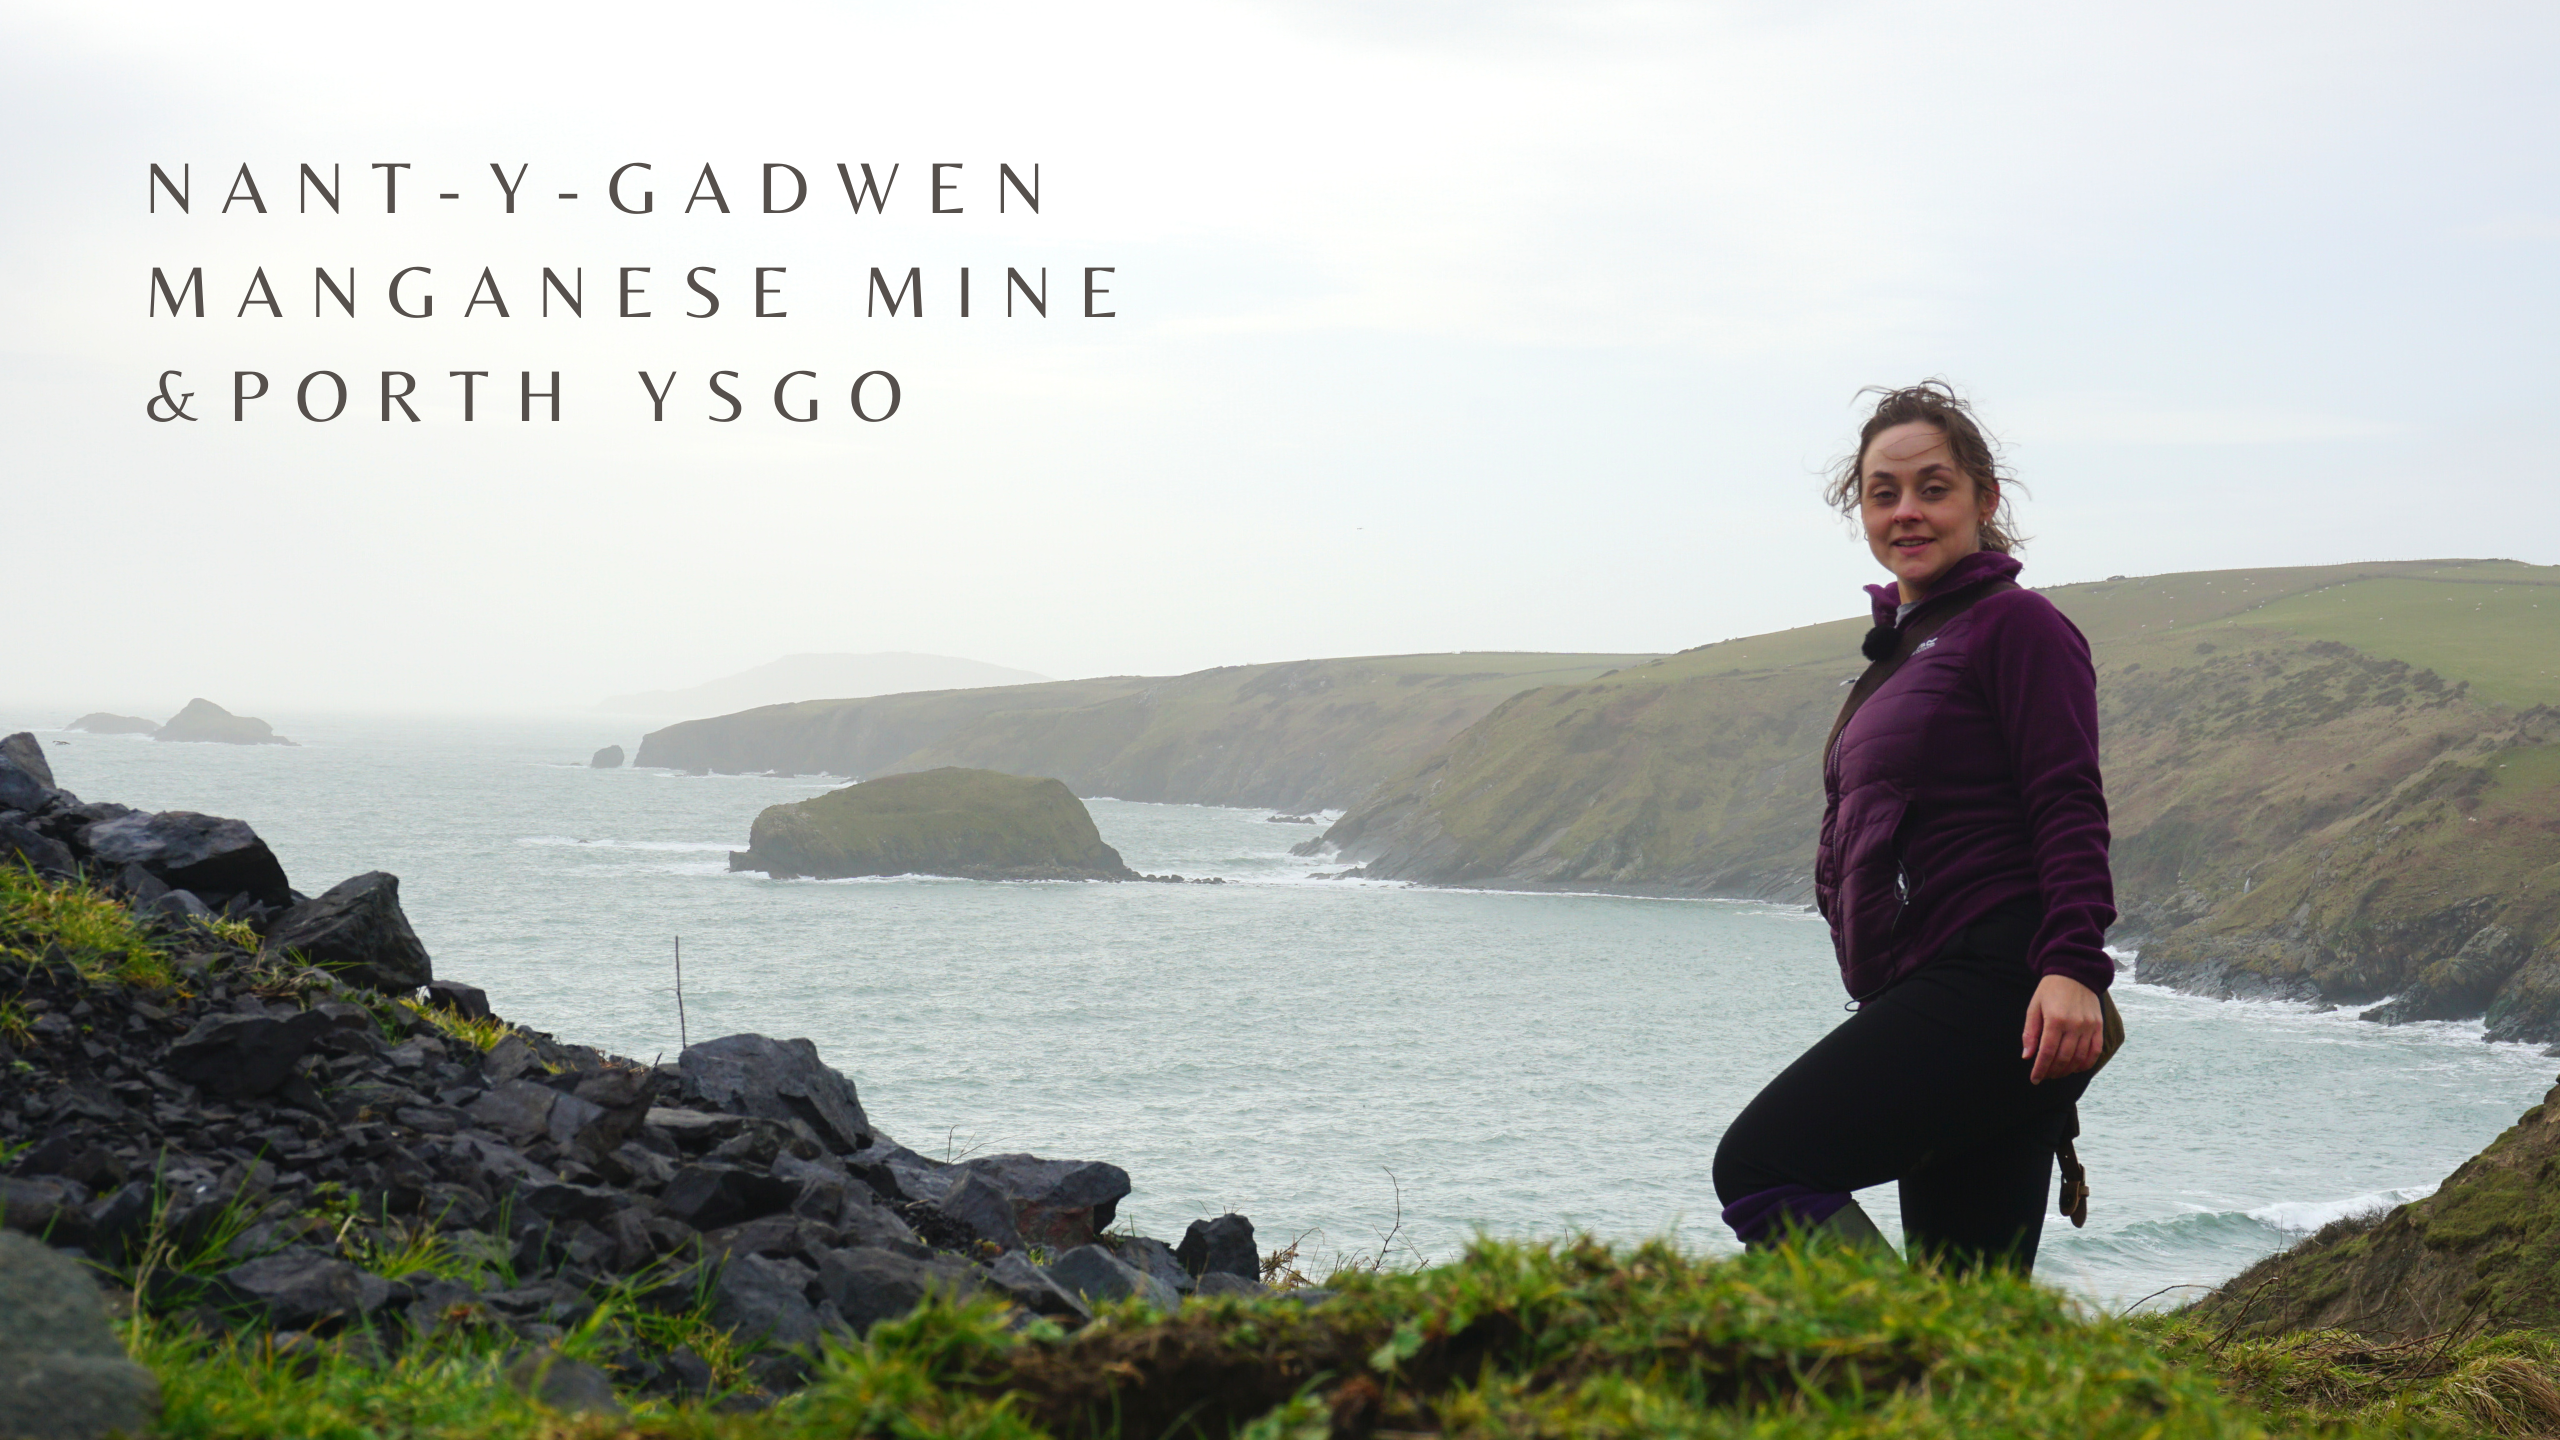 Visiting Nant-y-Gadwen and Porth Ysgo, North Wales